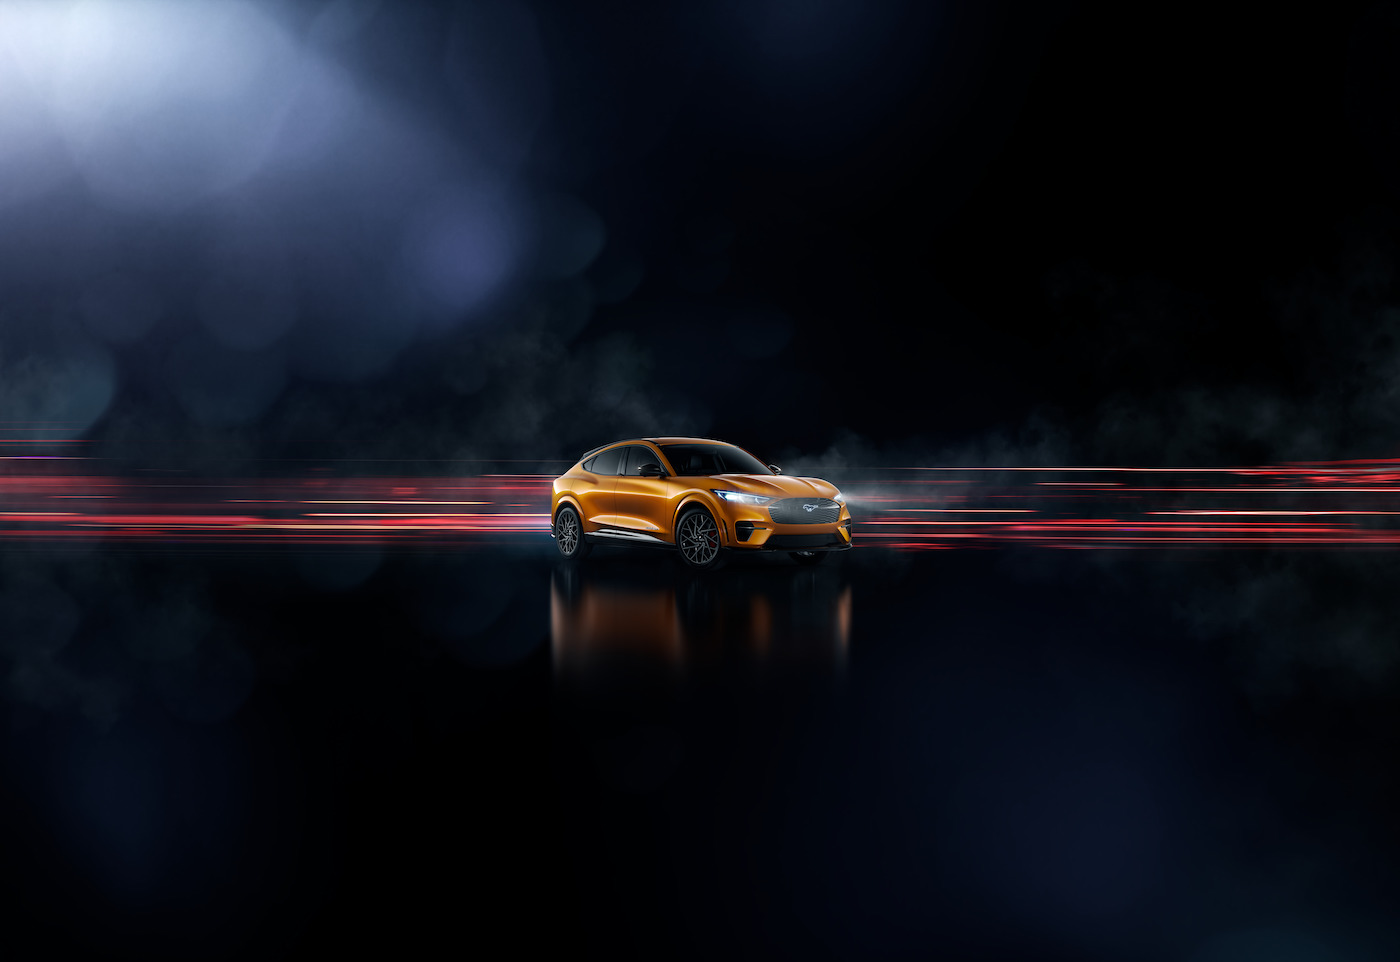 113-2021-ford-mustang-mach-e-cyber-orange.jpg